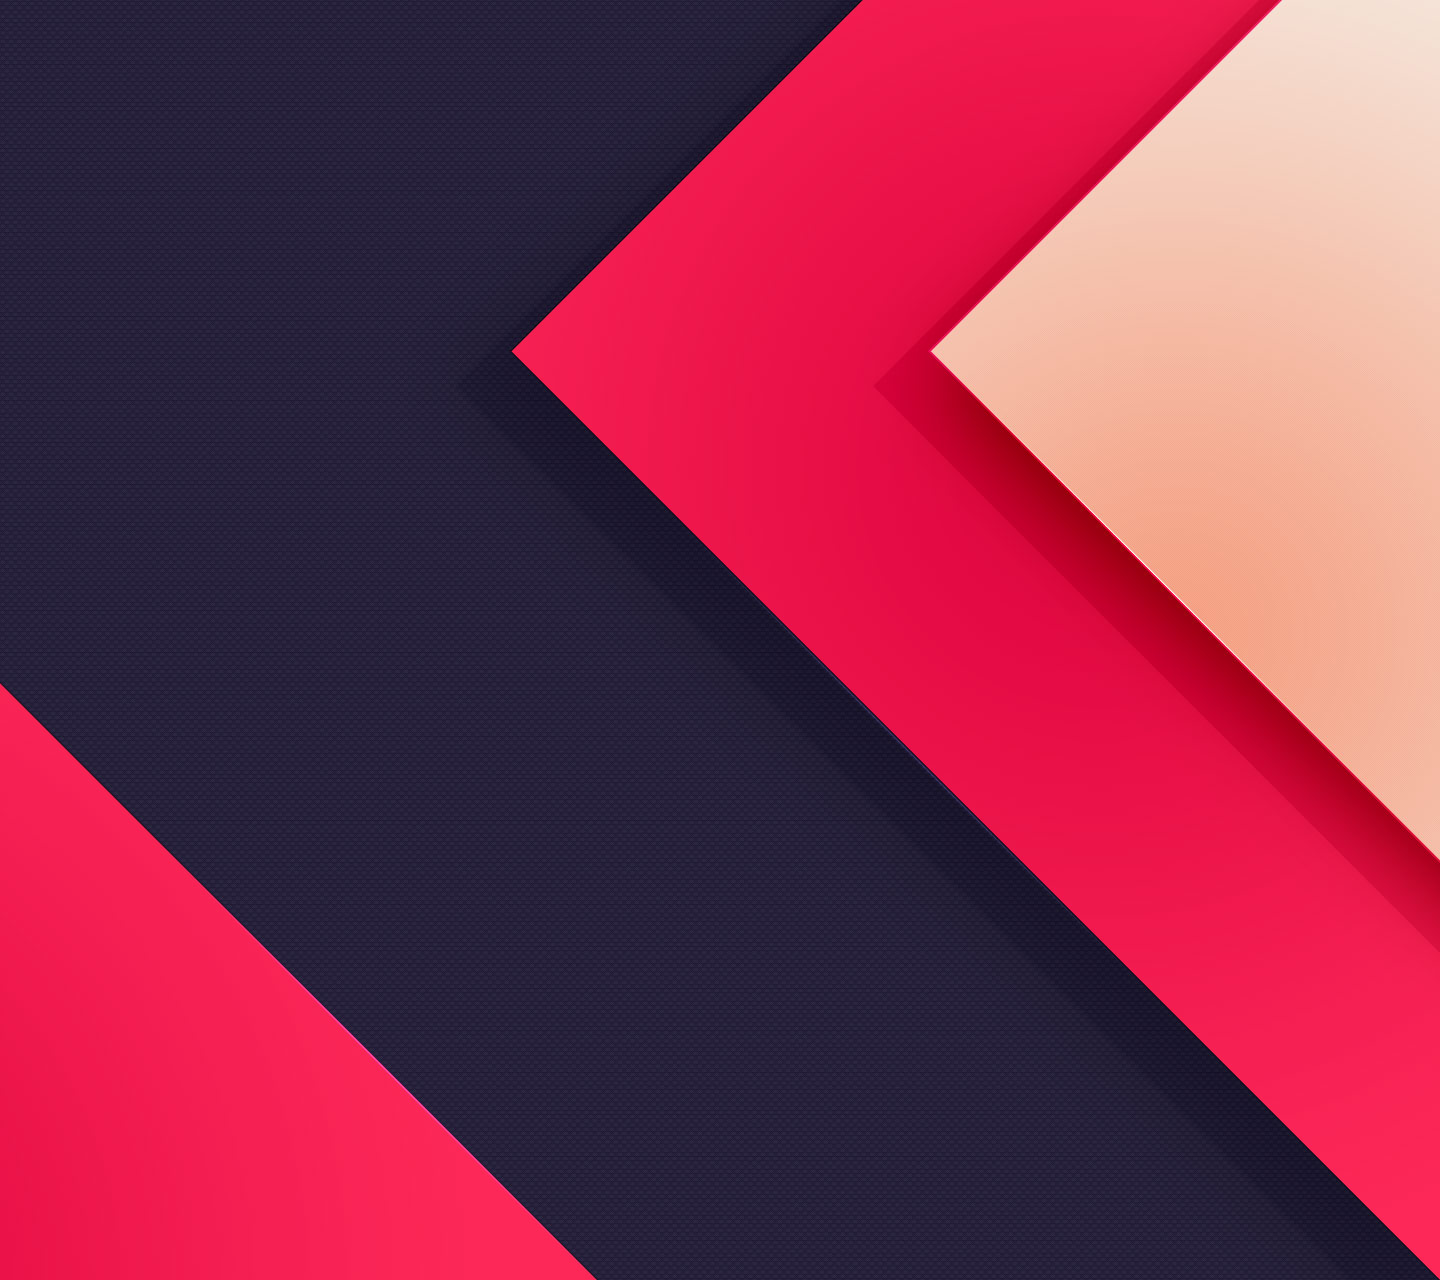 material design inspired wallpaper collection for your device